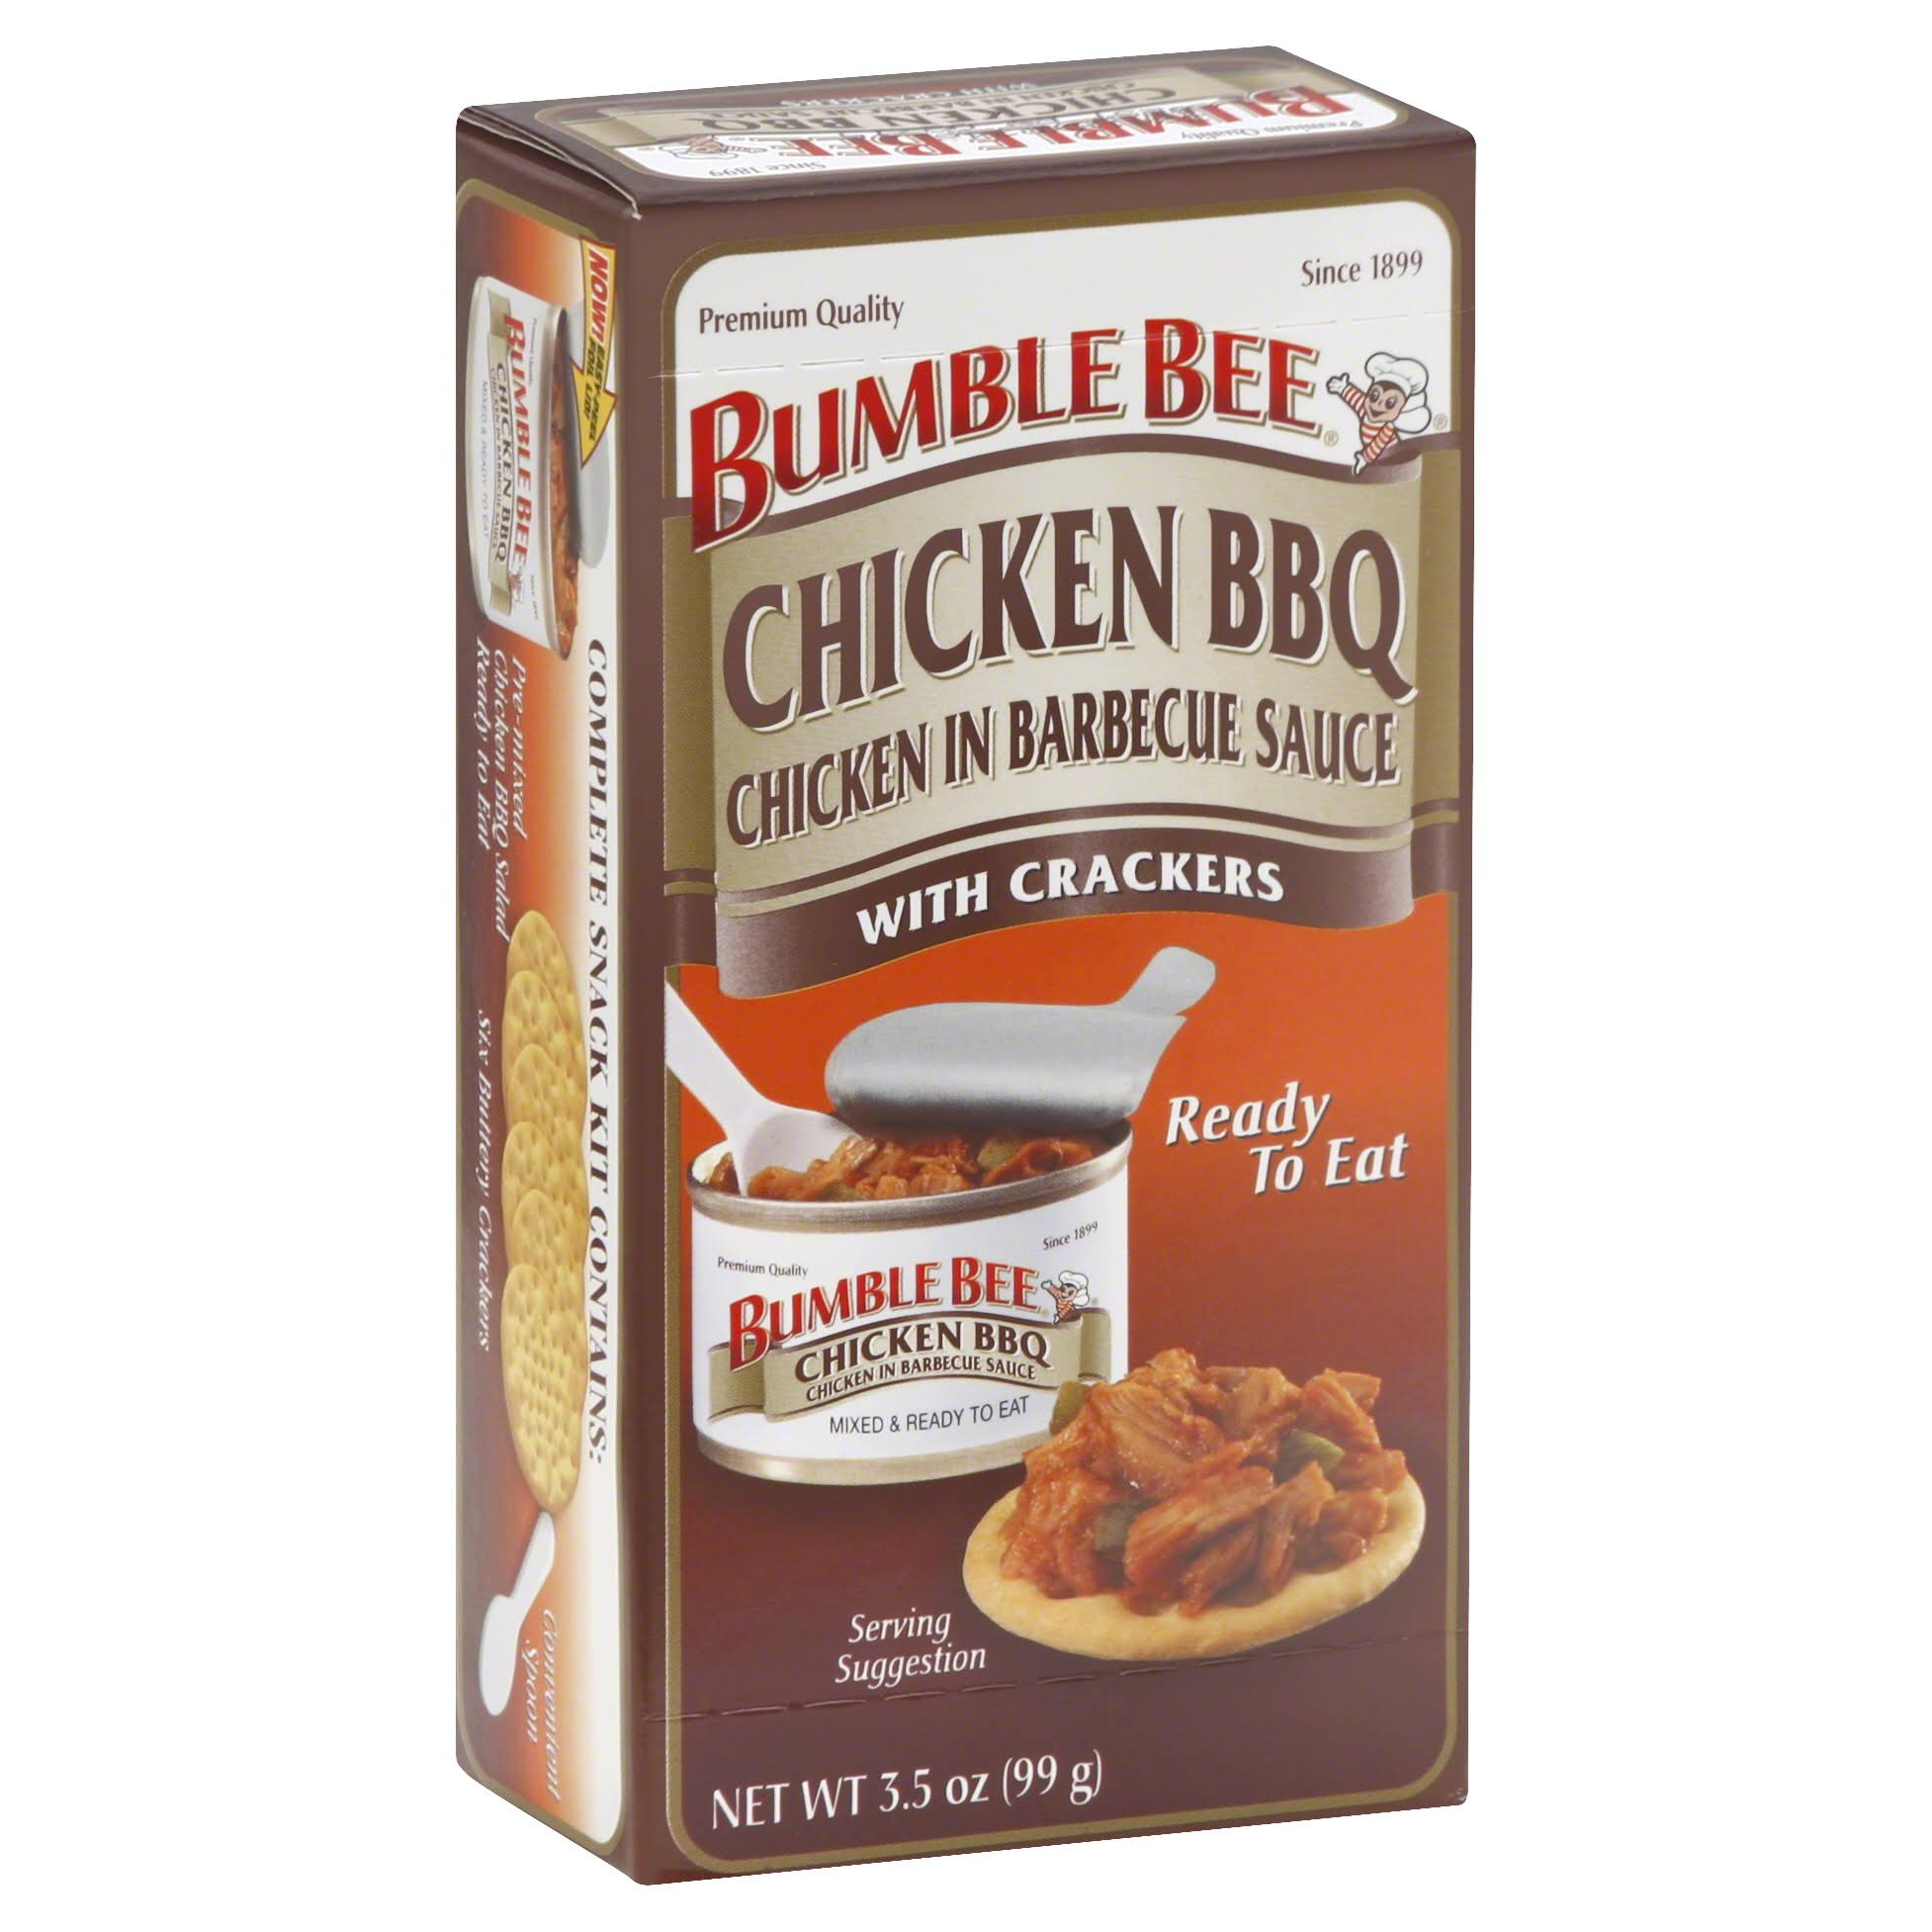 Bumble Bee Chicken BBQ, with Crackers - 3.5 oz